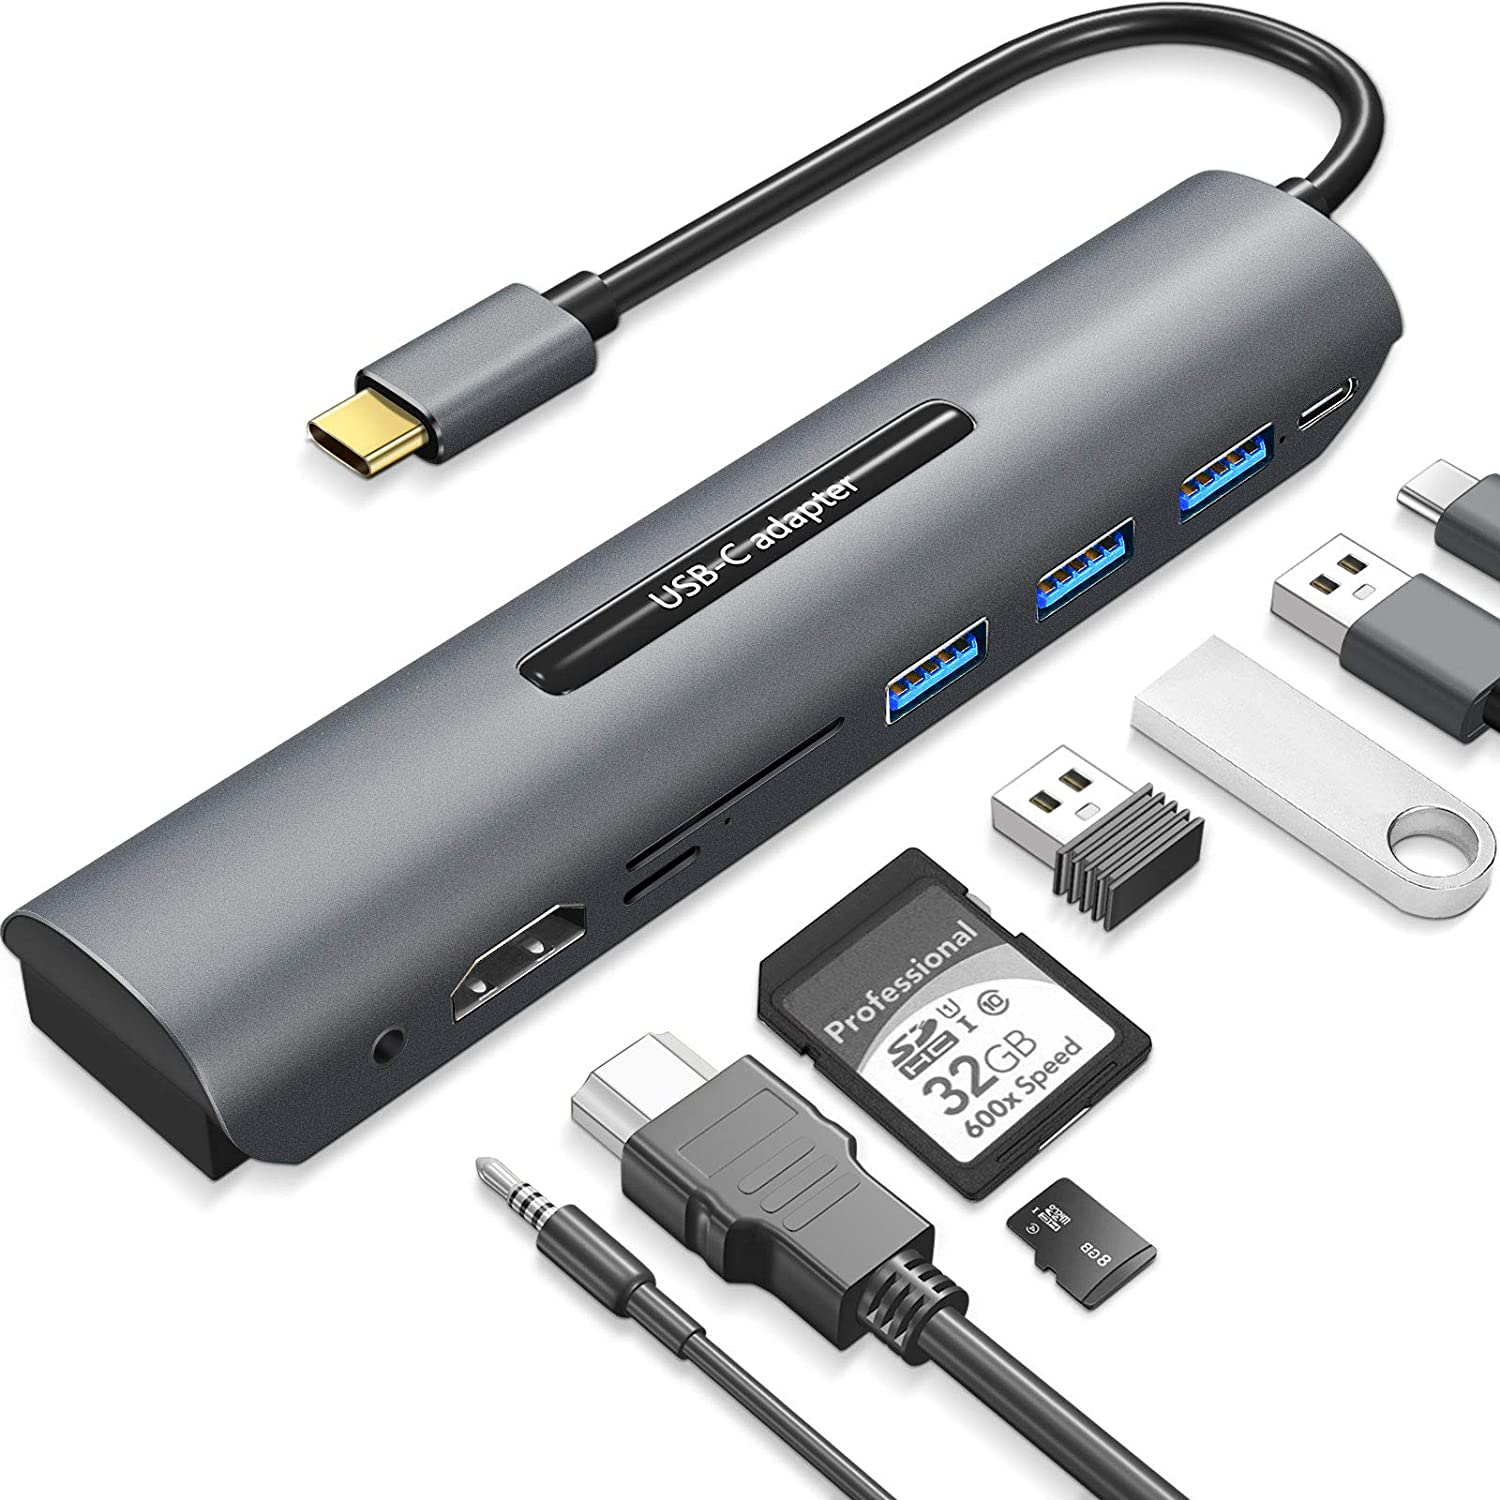 USB C Hub for MacBook Pro, 8 in 1 USB C Multiport Adapter, with 4K HDMI, USB 3.0 and USB-A Ports, 60W Power Delivery, SD/TF Card Reader, USB Dongle Compatible with MacBook Pro/Air XPS